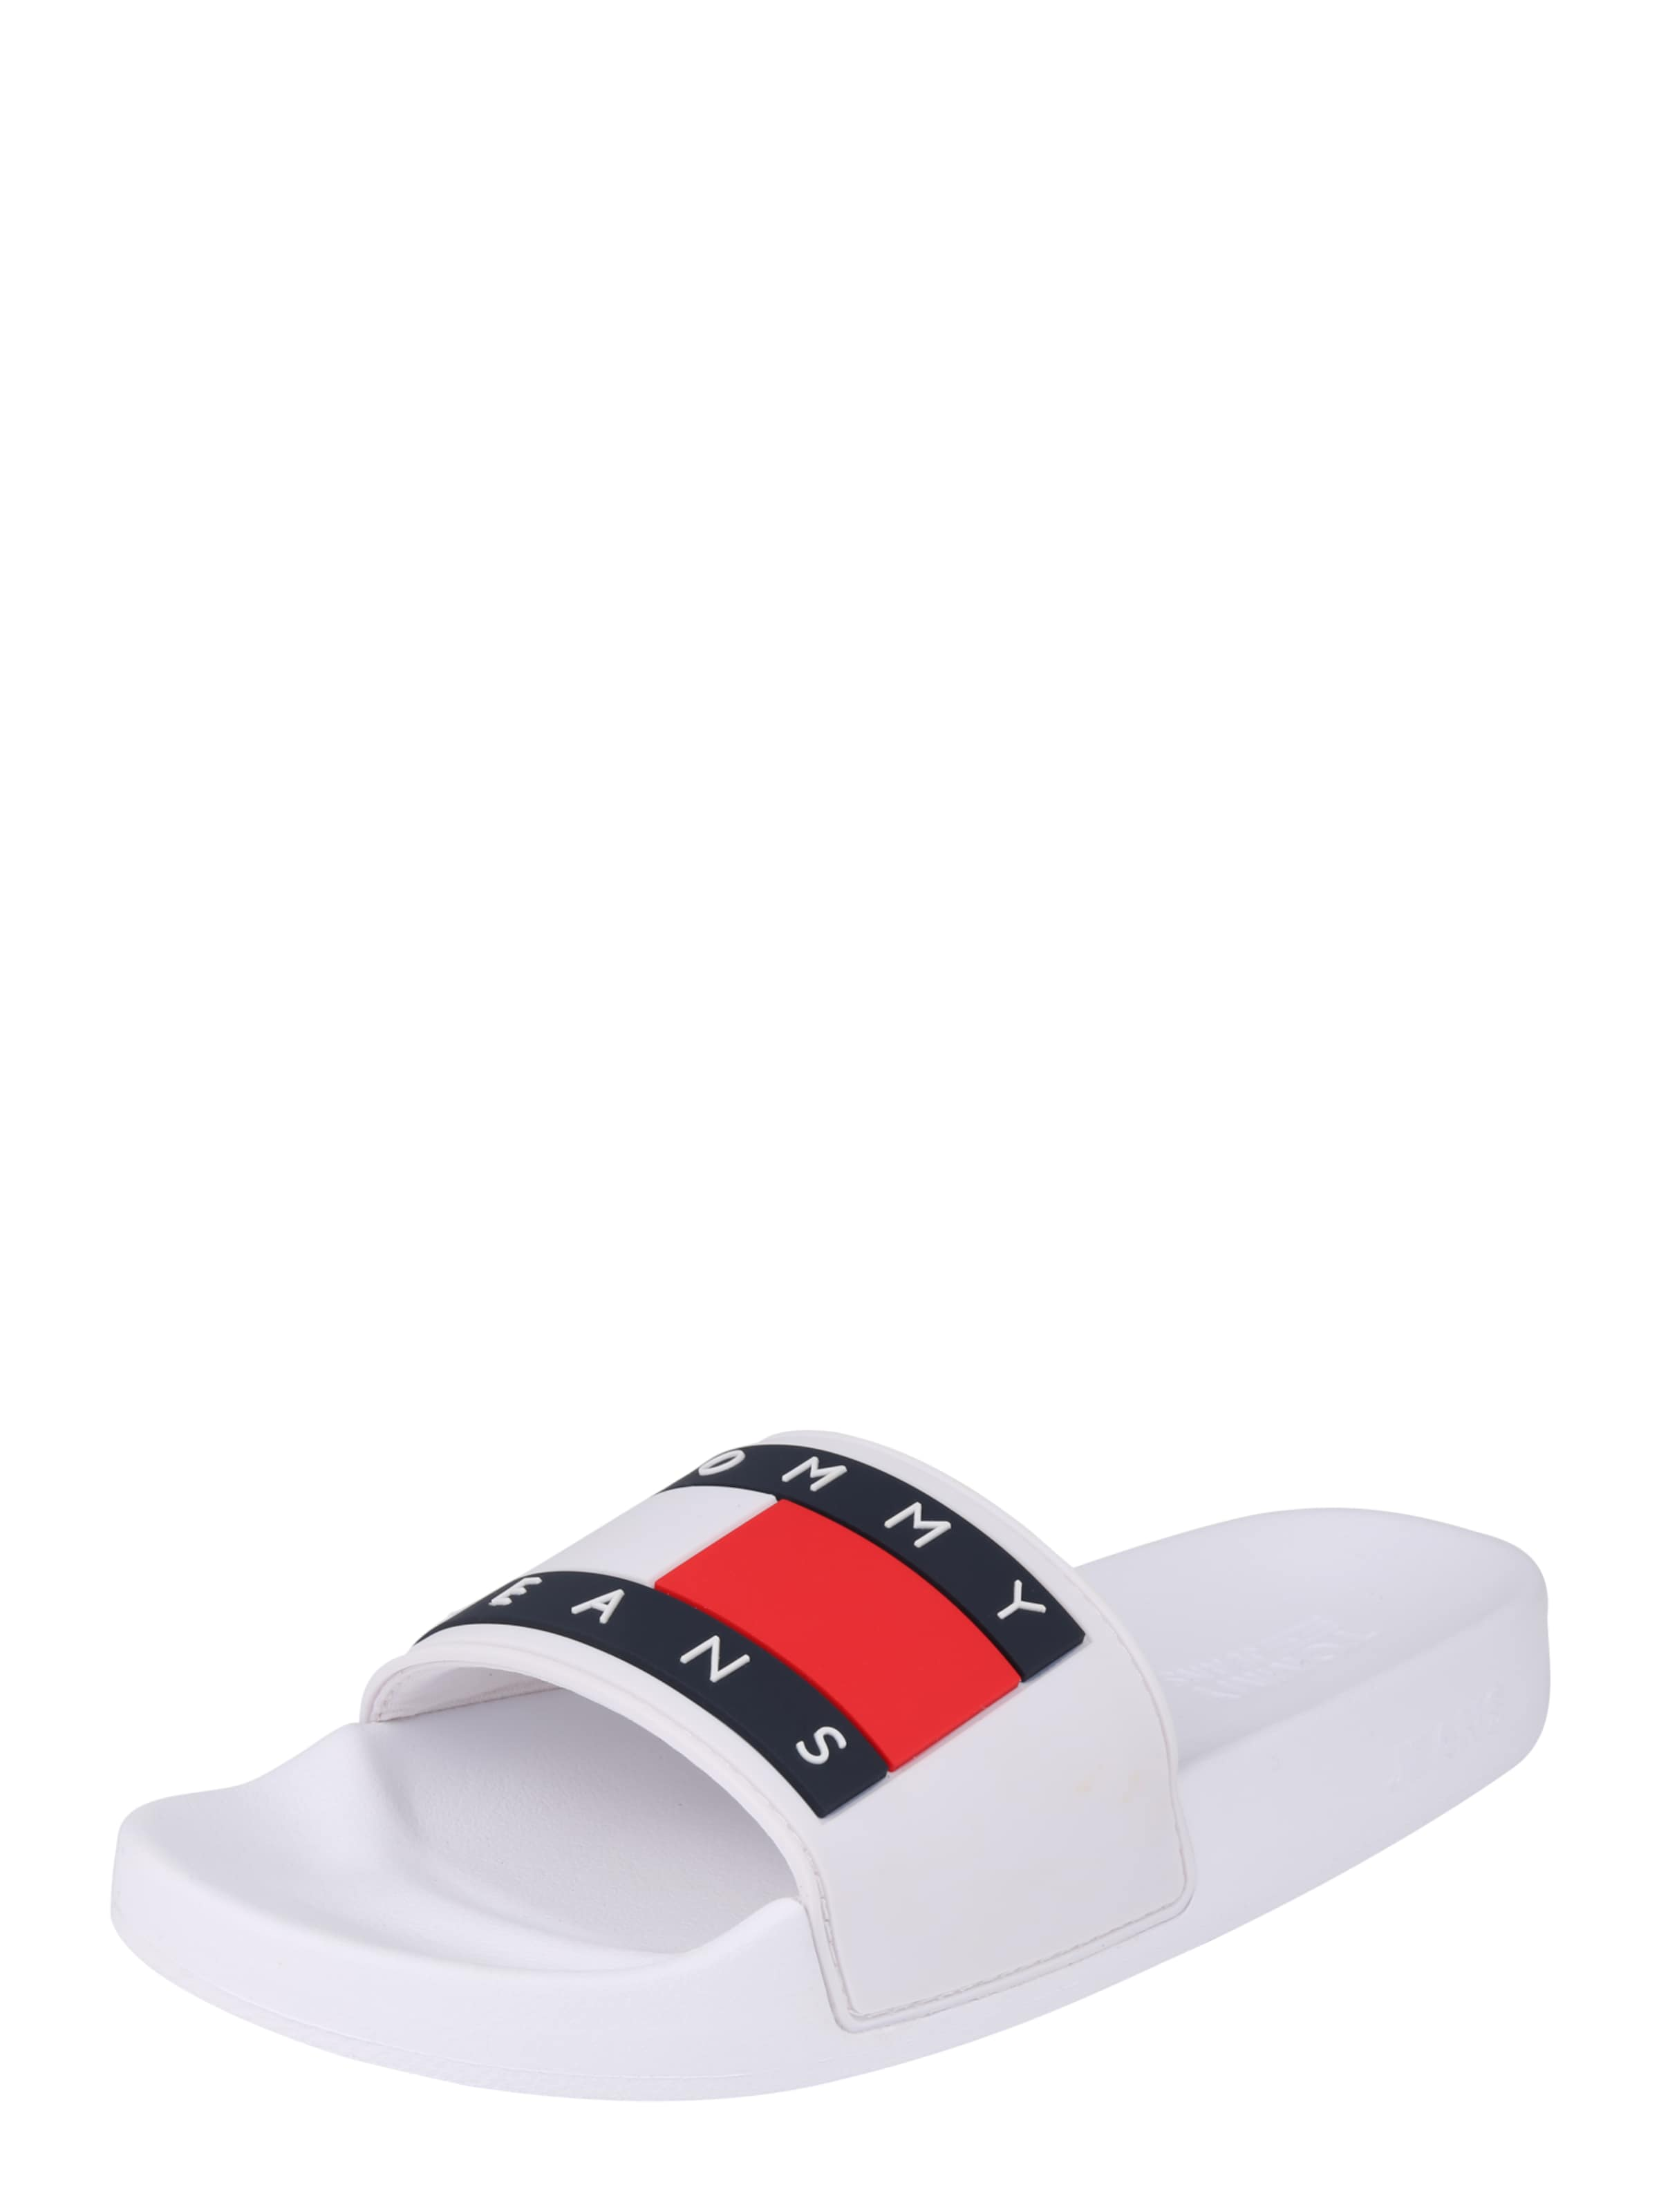 Tommy In Weiß NavyRot 'bubble' Jeans Slipper qMUpSzVLG